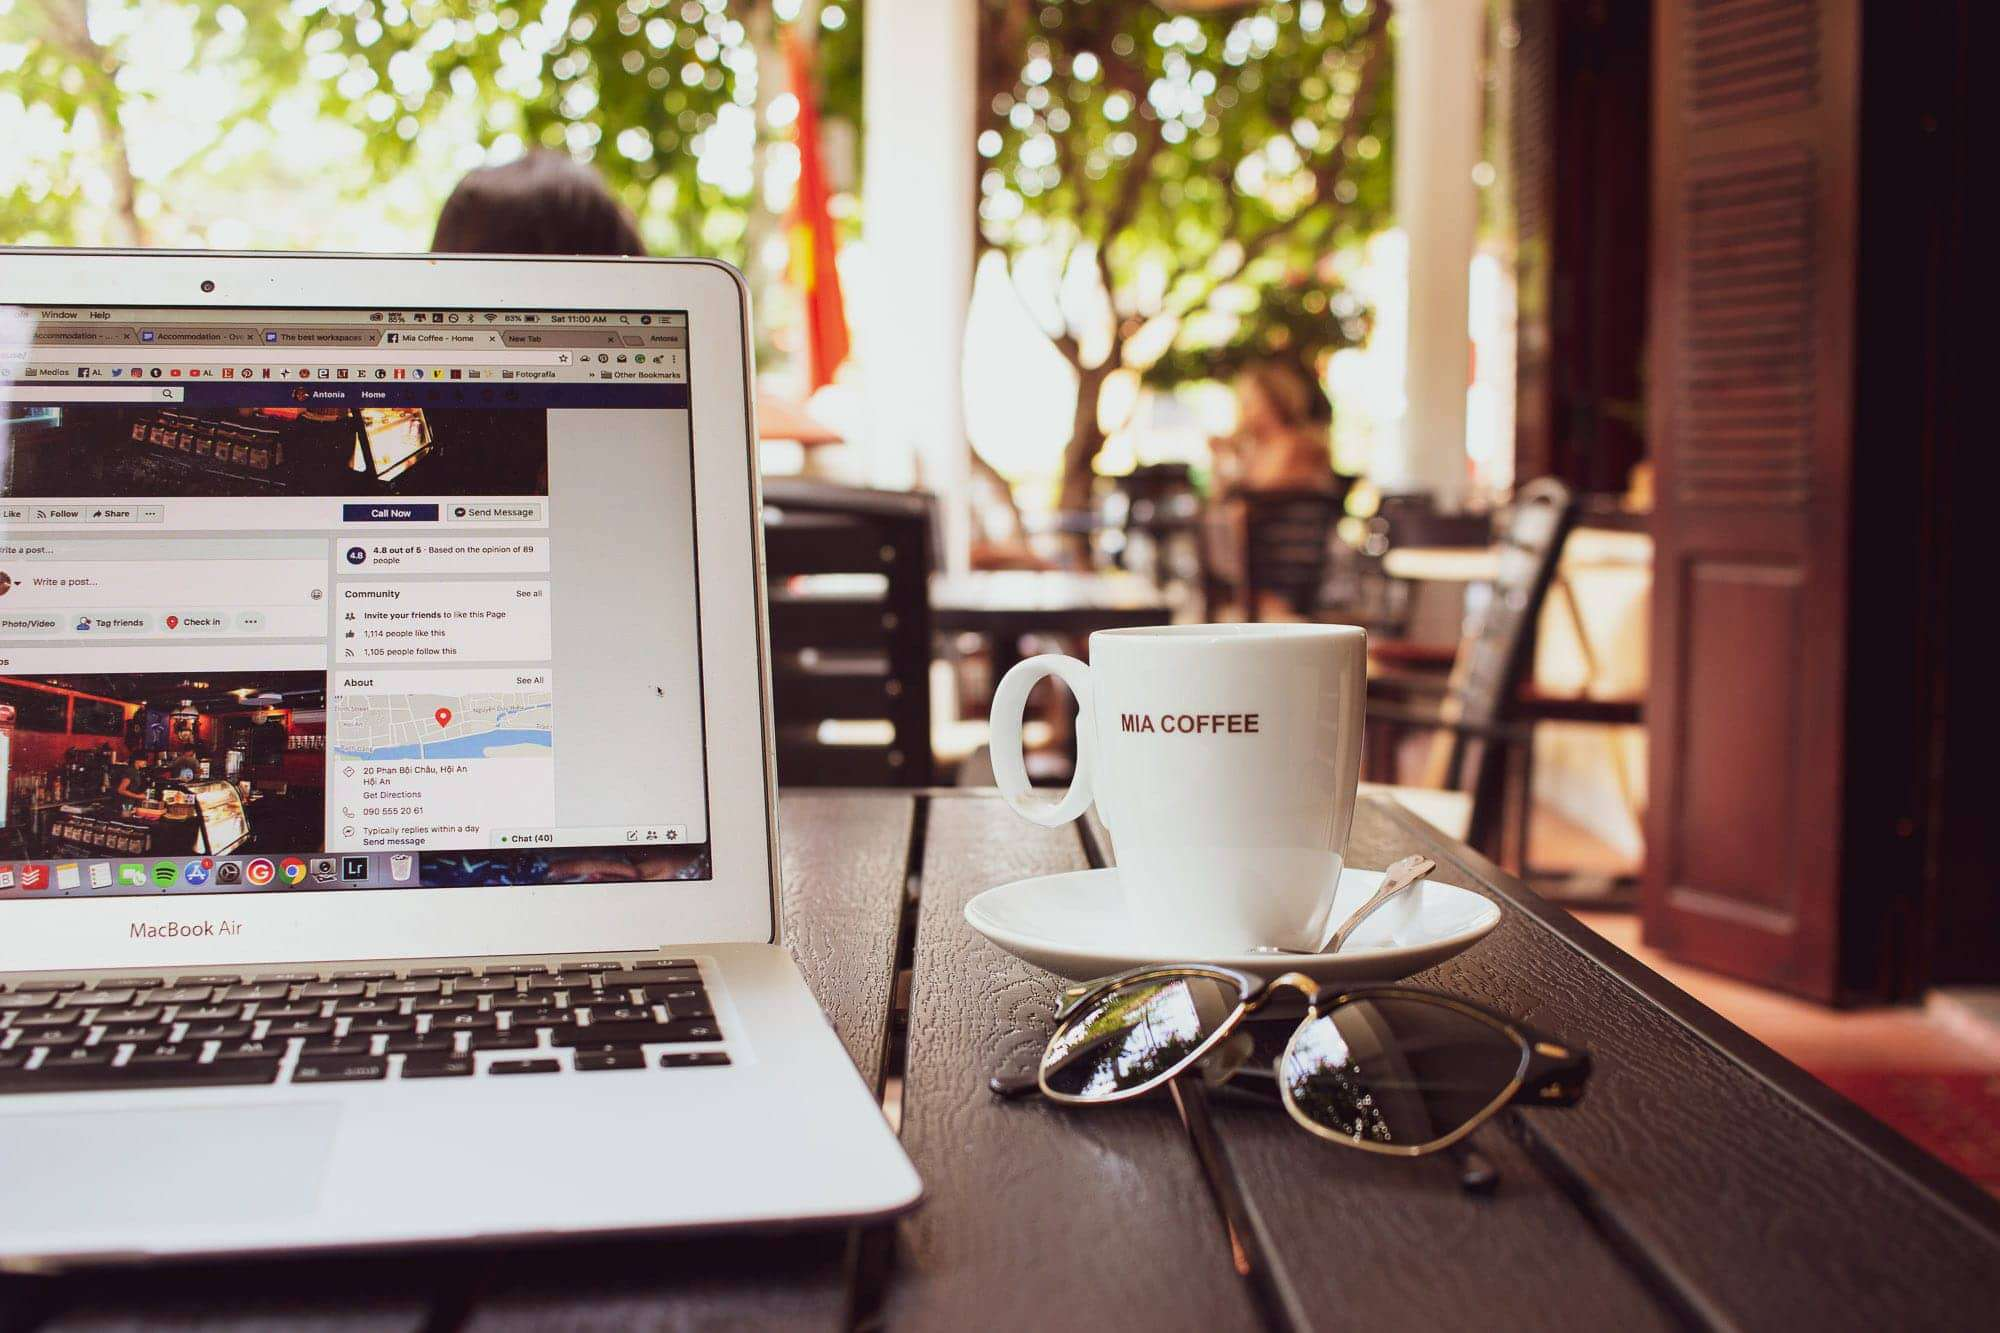 Mia Coffee - Workspaces for digital nomads in Hoi An